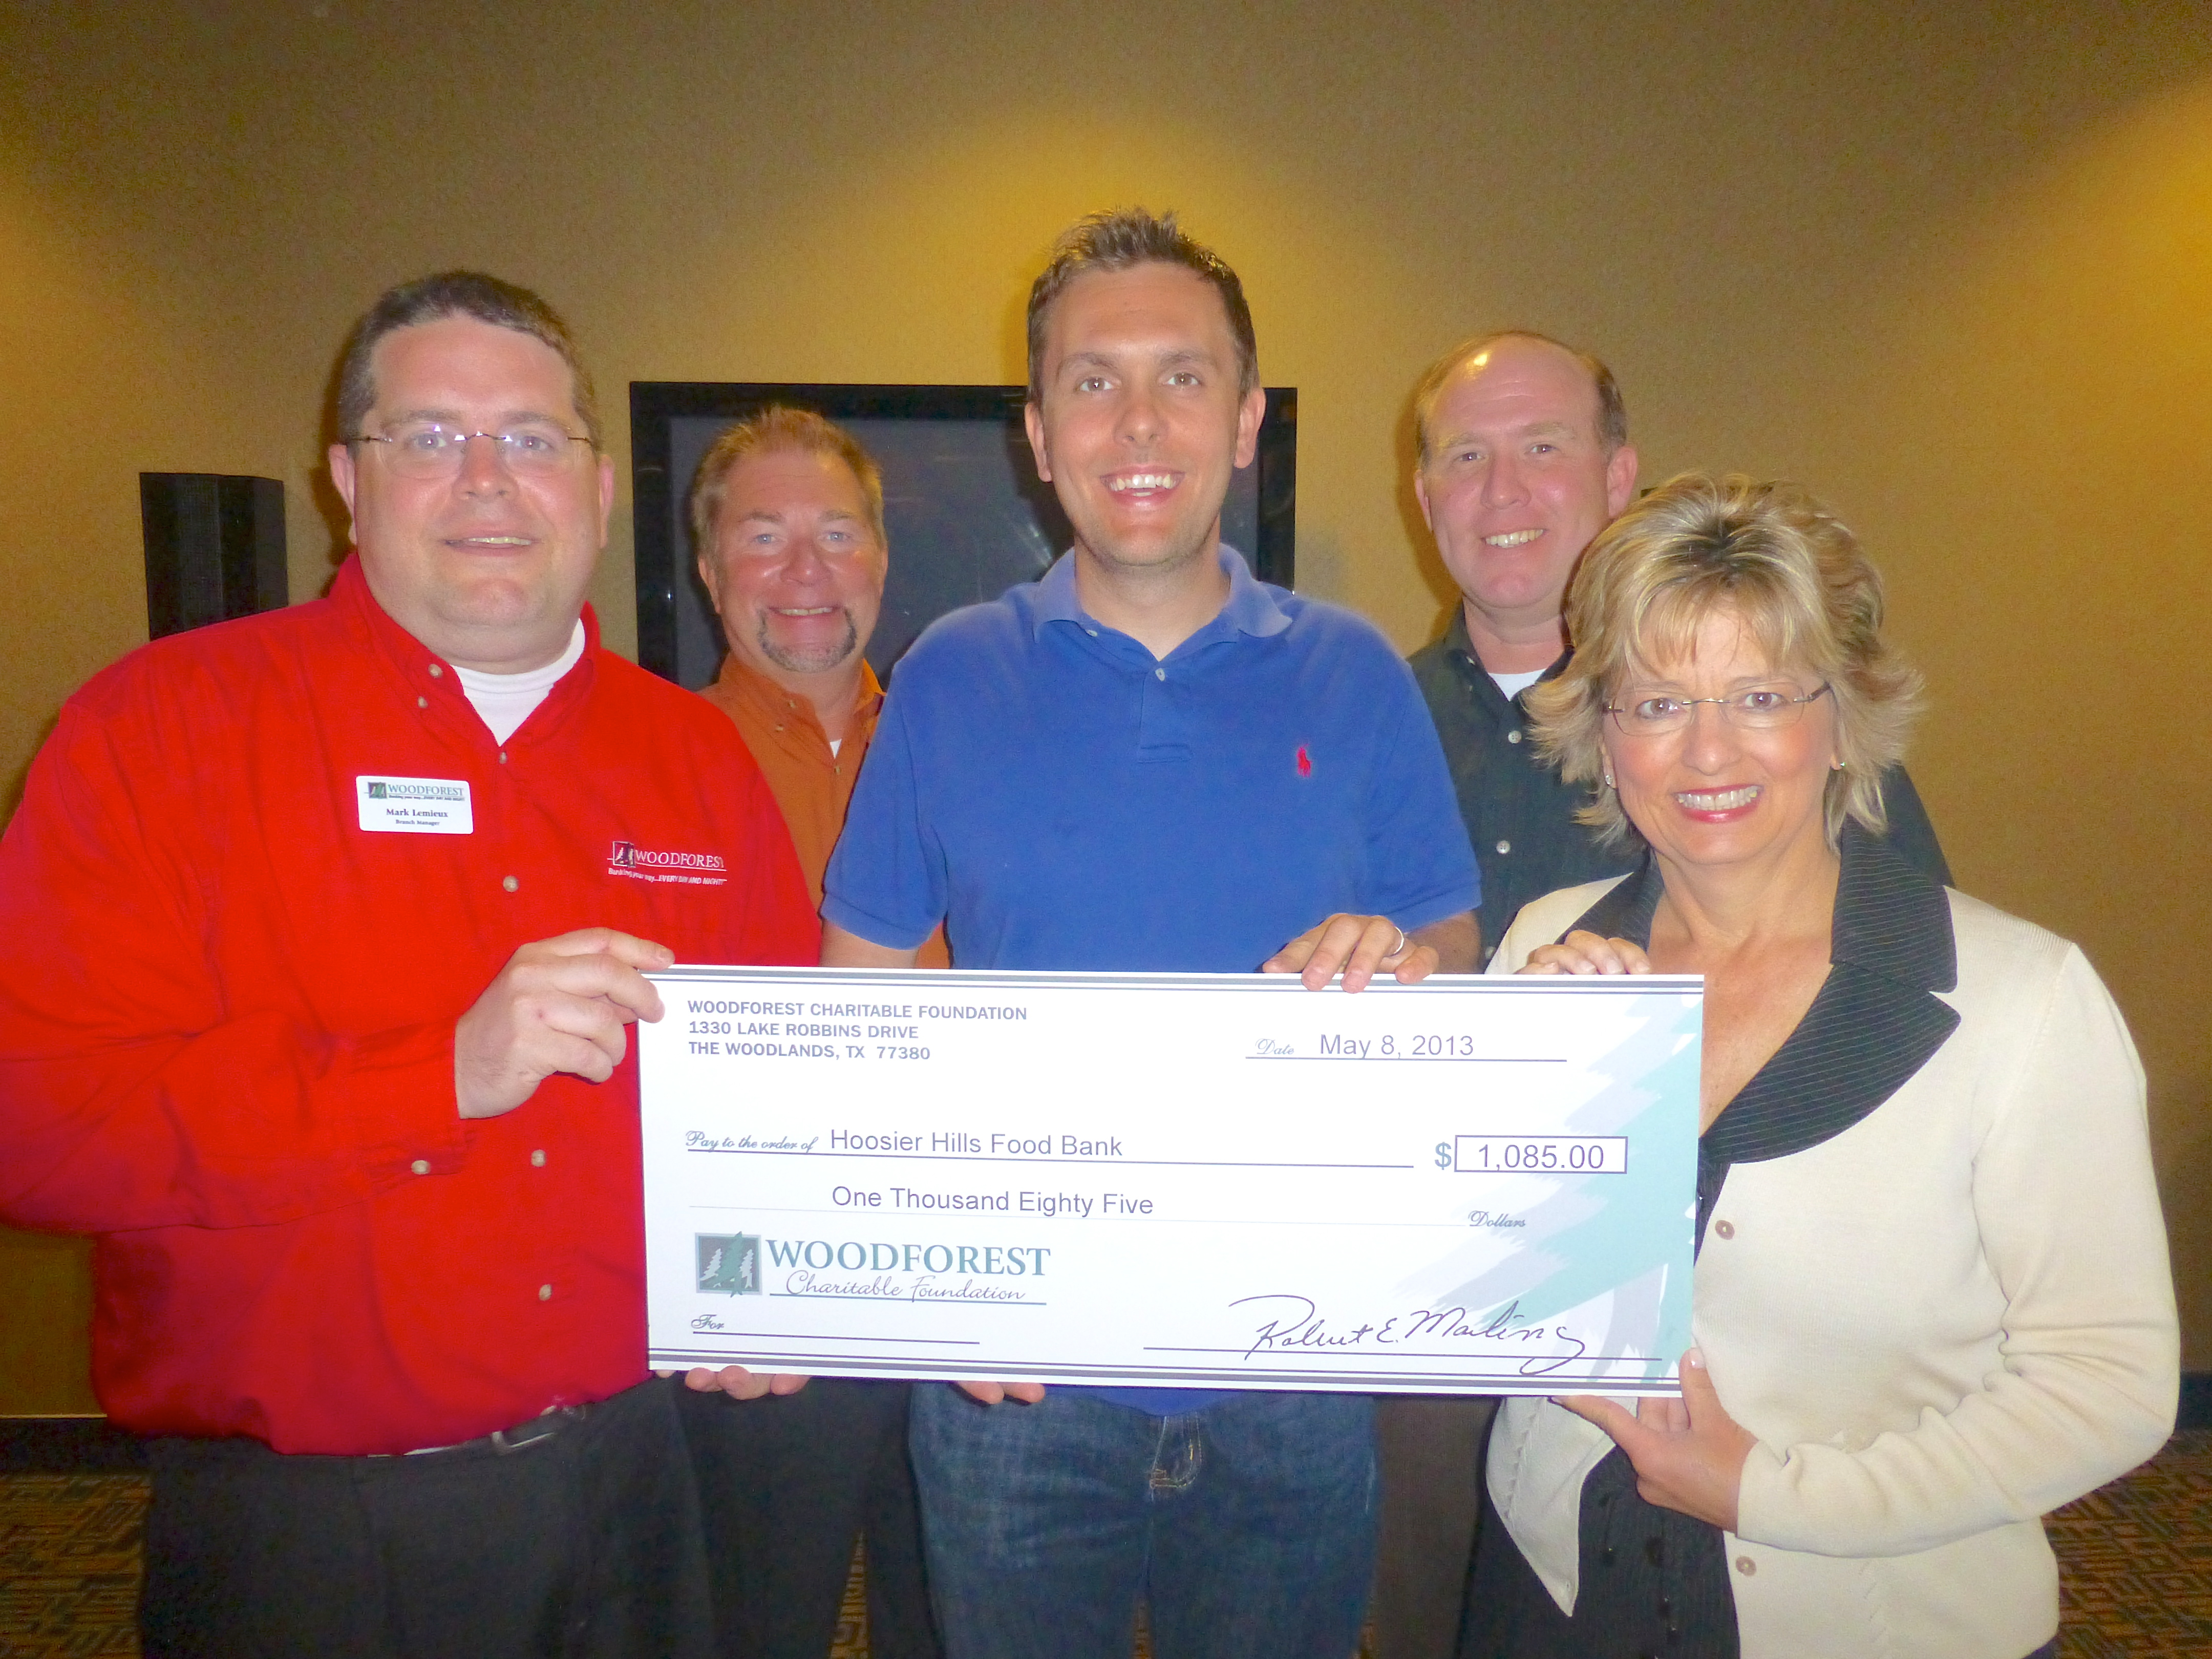 Hoosier Hills Food Bank receives $1,085 donation from Woodforest Charitable Foundation.